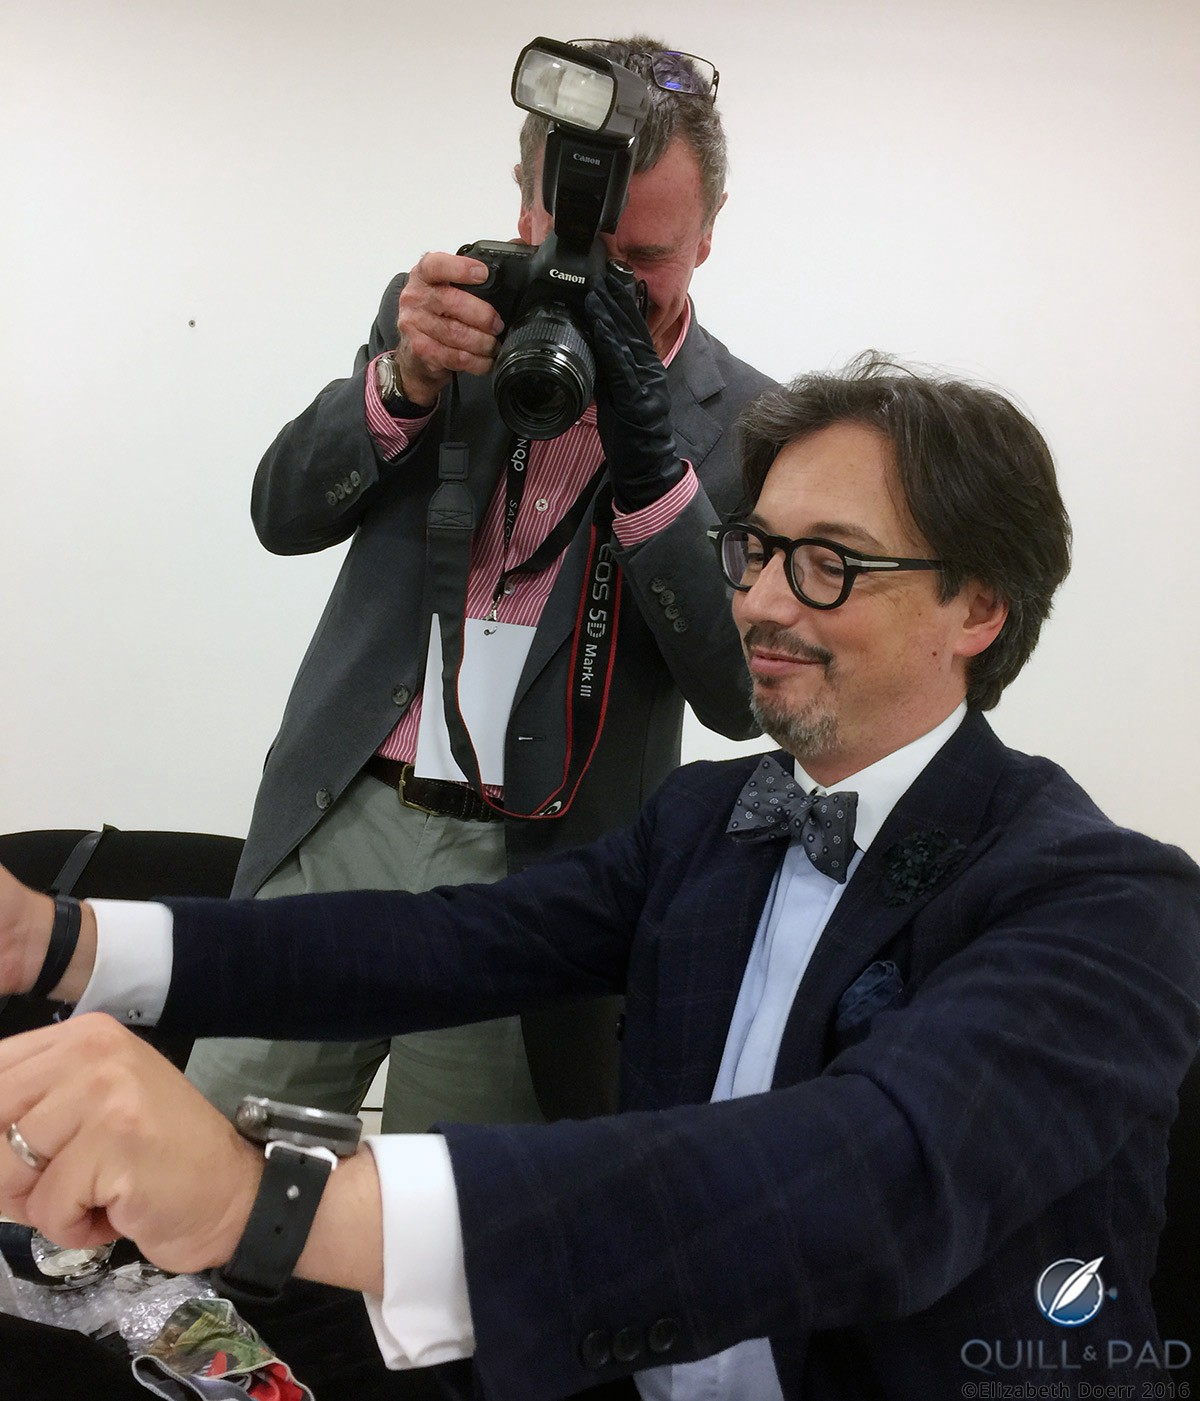 """Montblanc watch division head Davide Cerrato """"driving"""" the new 1858 Chronograph Tachymeter Limited Edition with Quill & Pad's Ian Skellern photographing the action"""